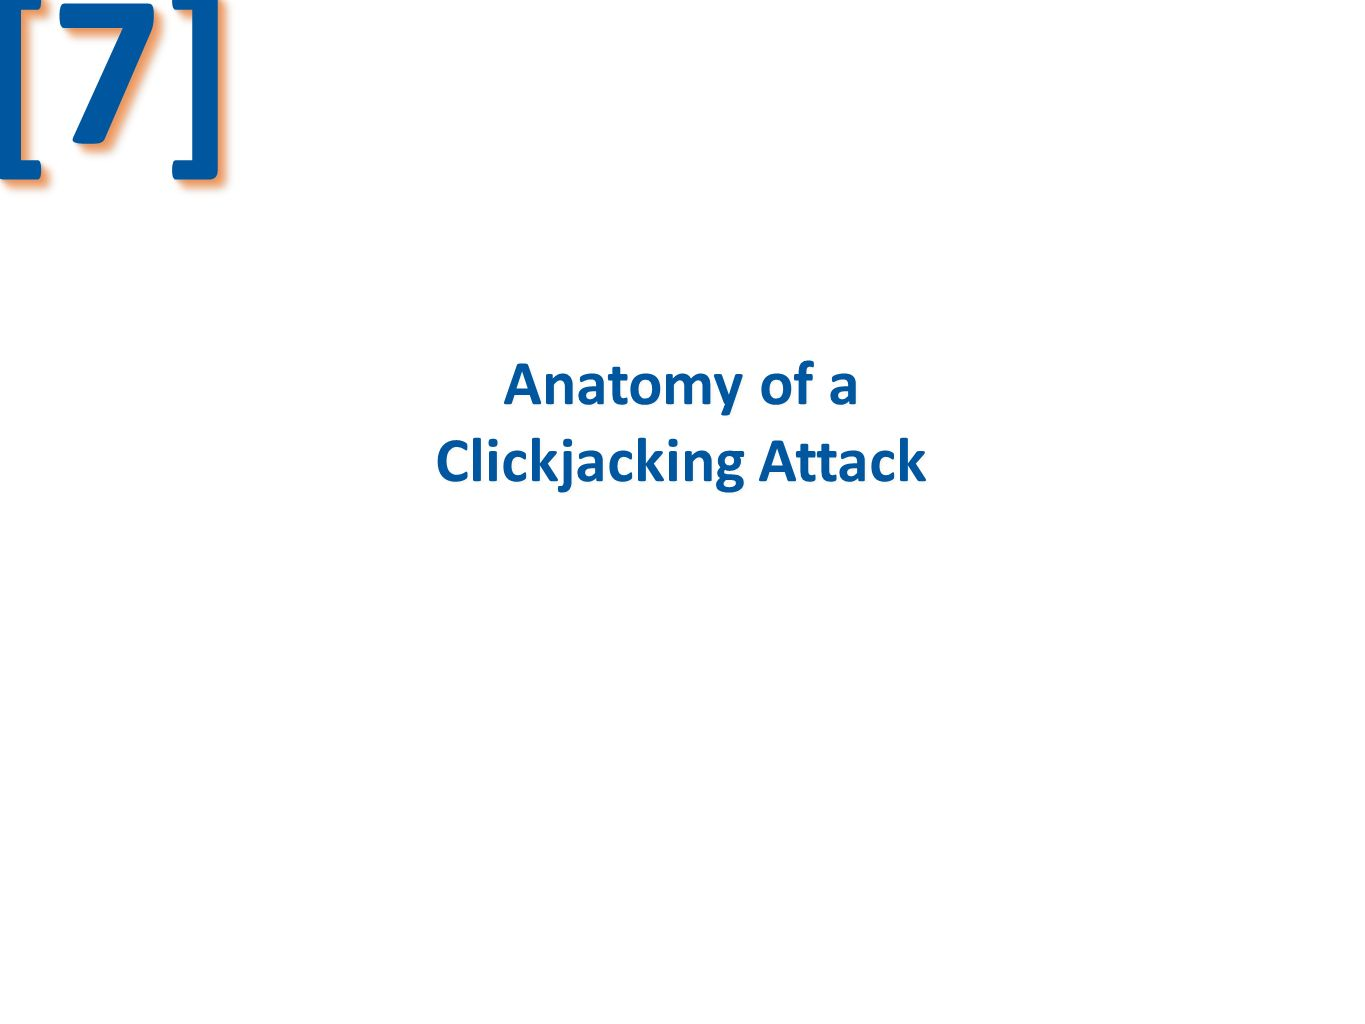 [7] Anatomy of a Clickjacking Attack